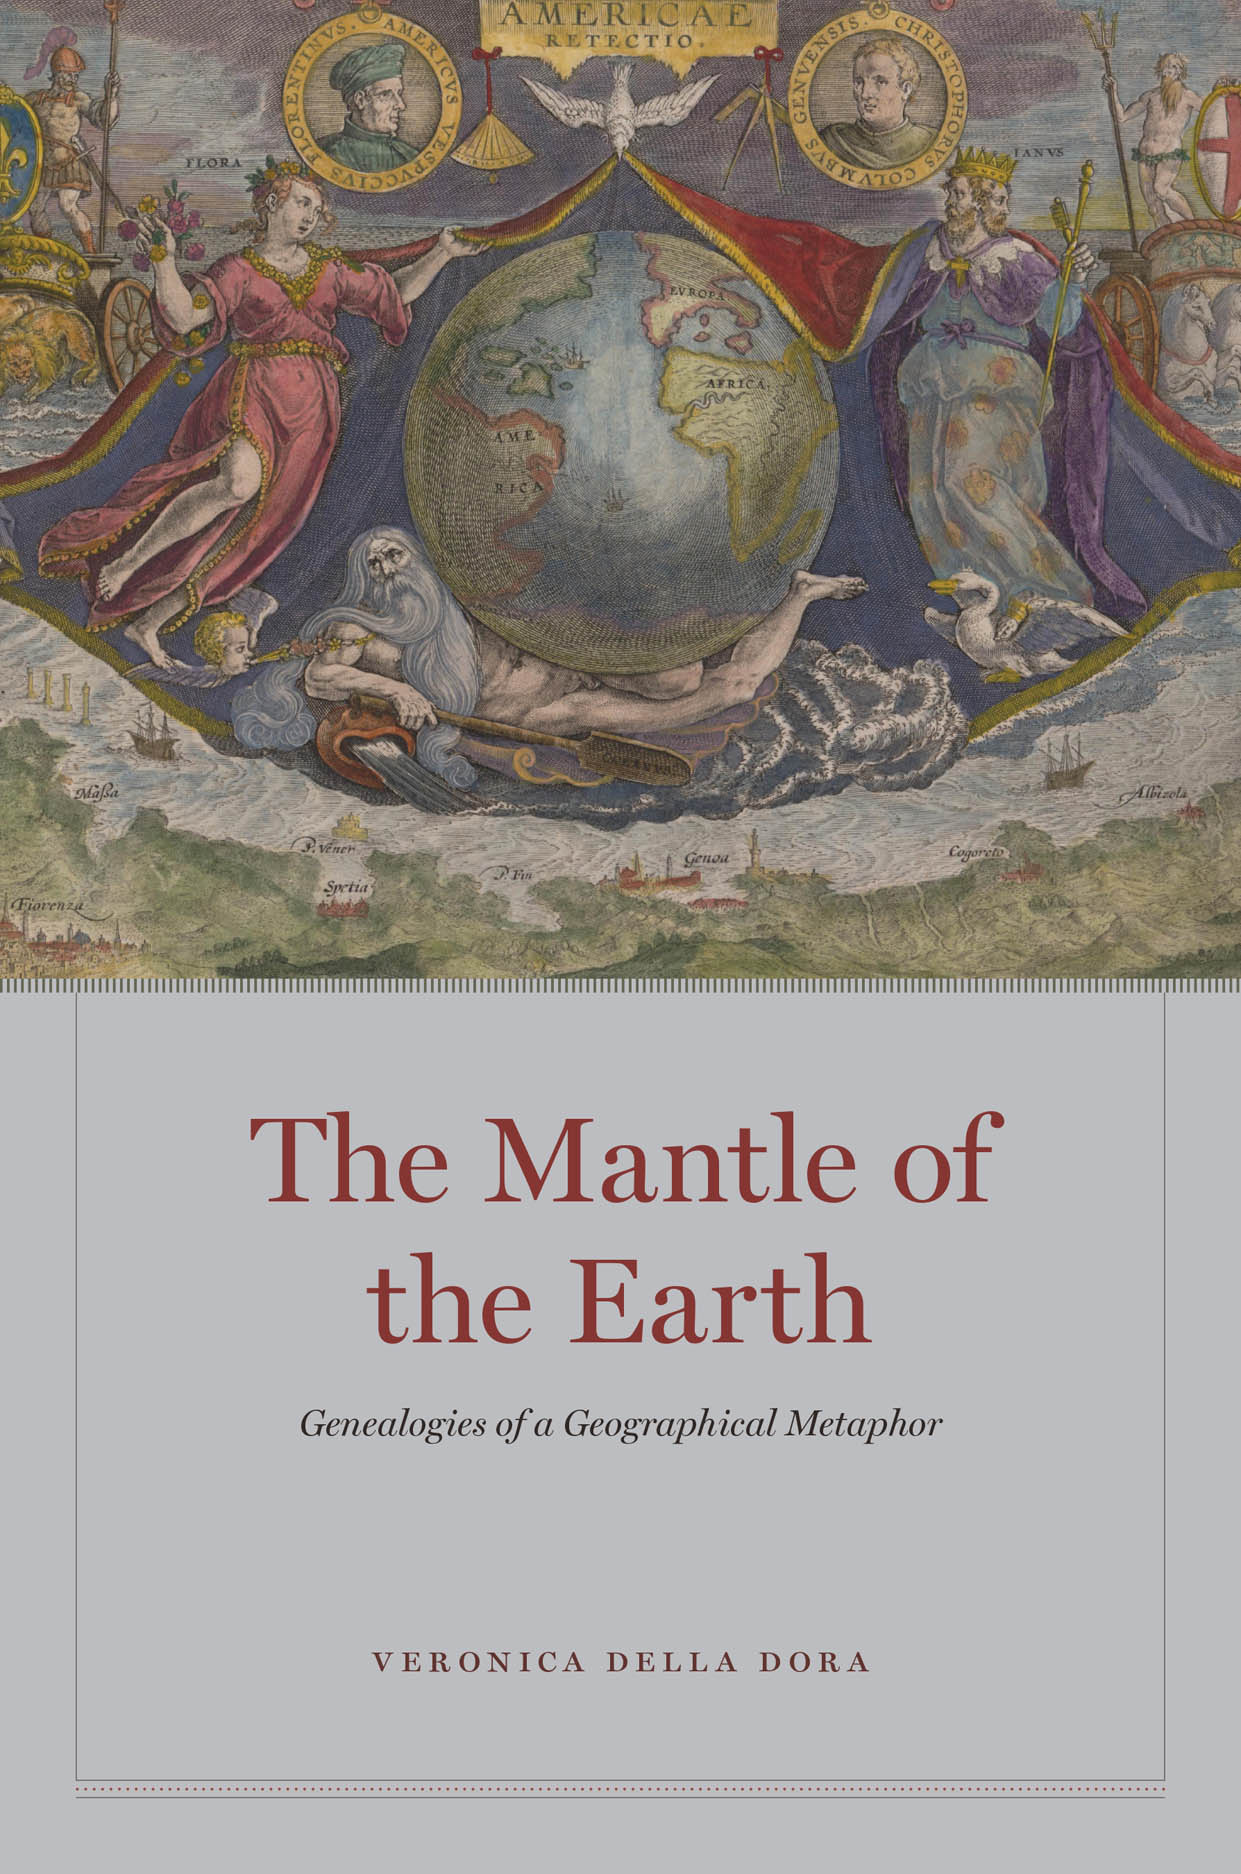 The Mantle of the Earth: Genealogies of a Geographical Metaphor